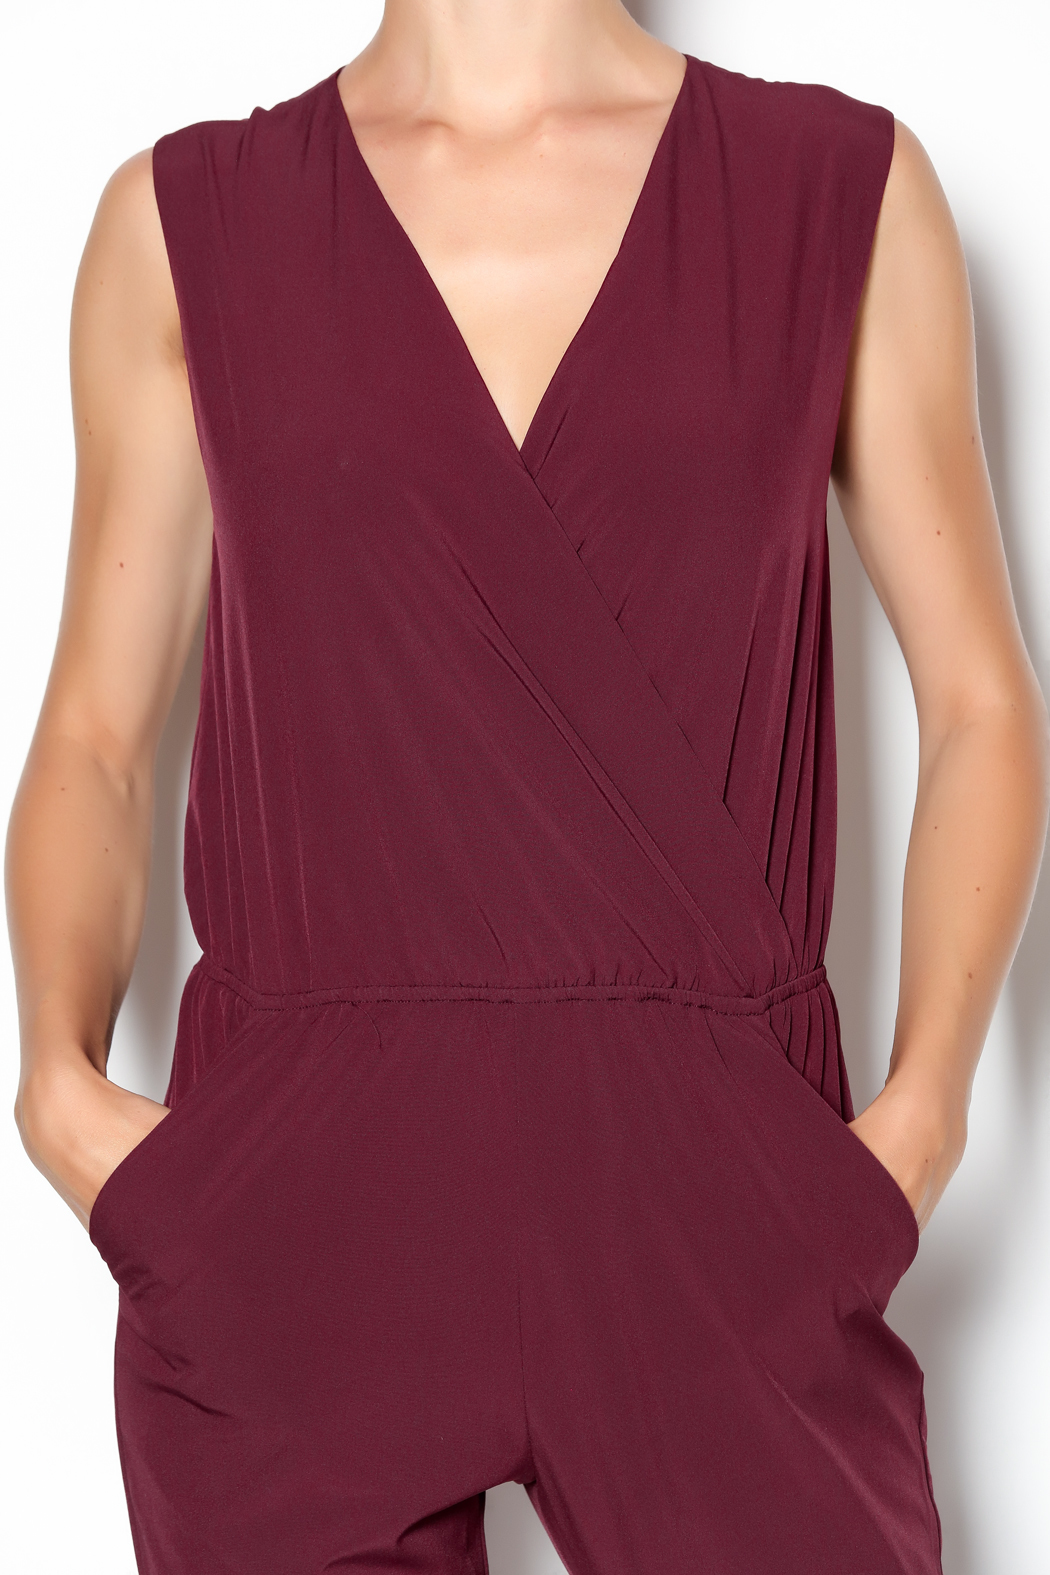 c luce bordeaux jumpsuit from texas by sewn clothing. Black Bedroom Furniture Sets. Home Design Ideas